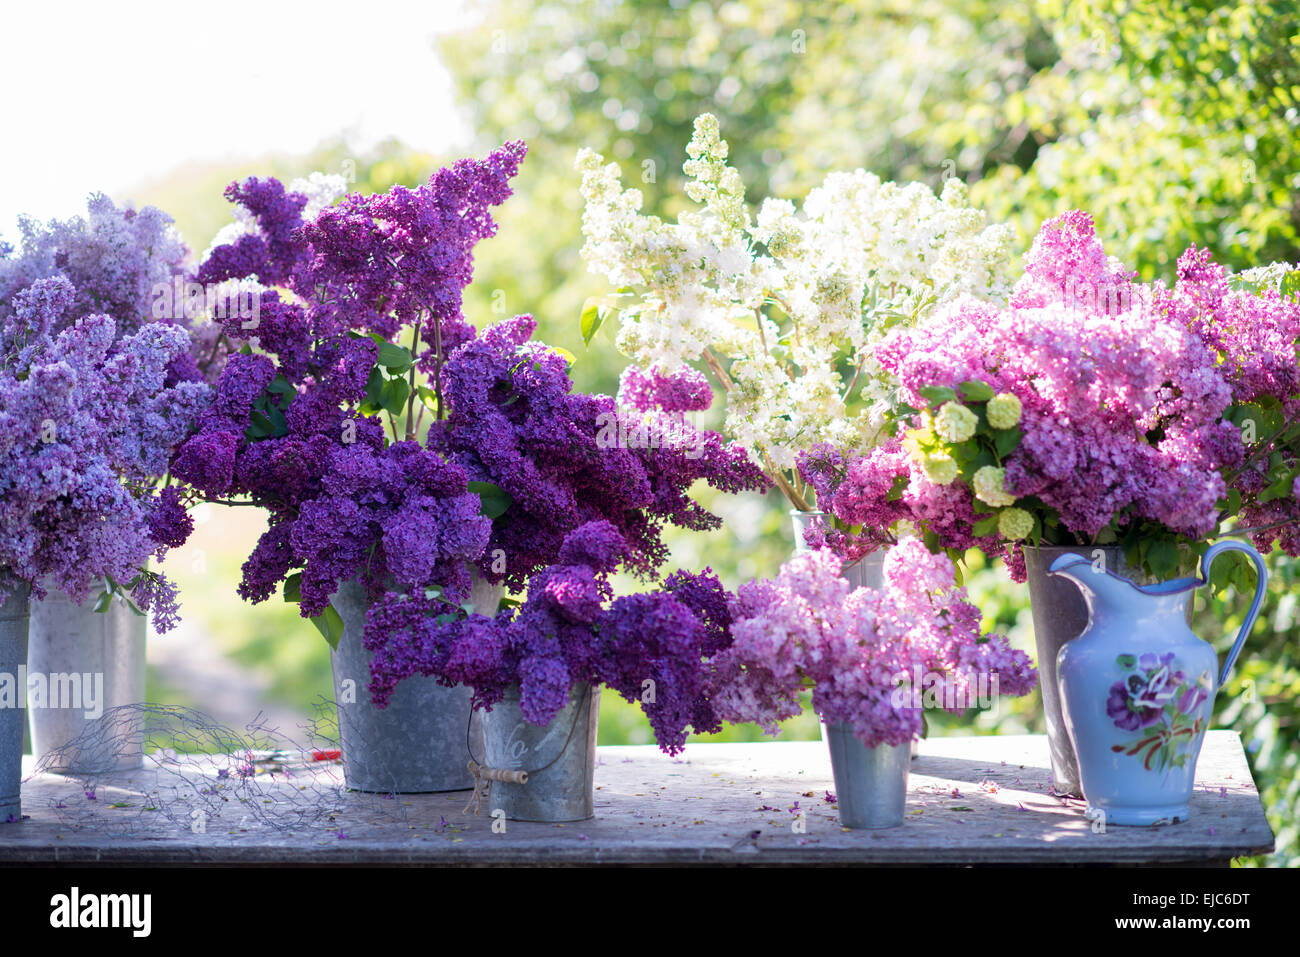 Cut stems of lilac blossoms (Syringa vulgaris)  and Snowball Bush (Viburnum opulus 'Roseum') in spring - Stock Image